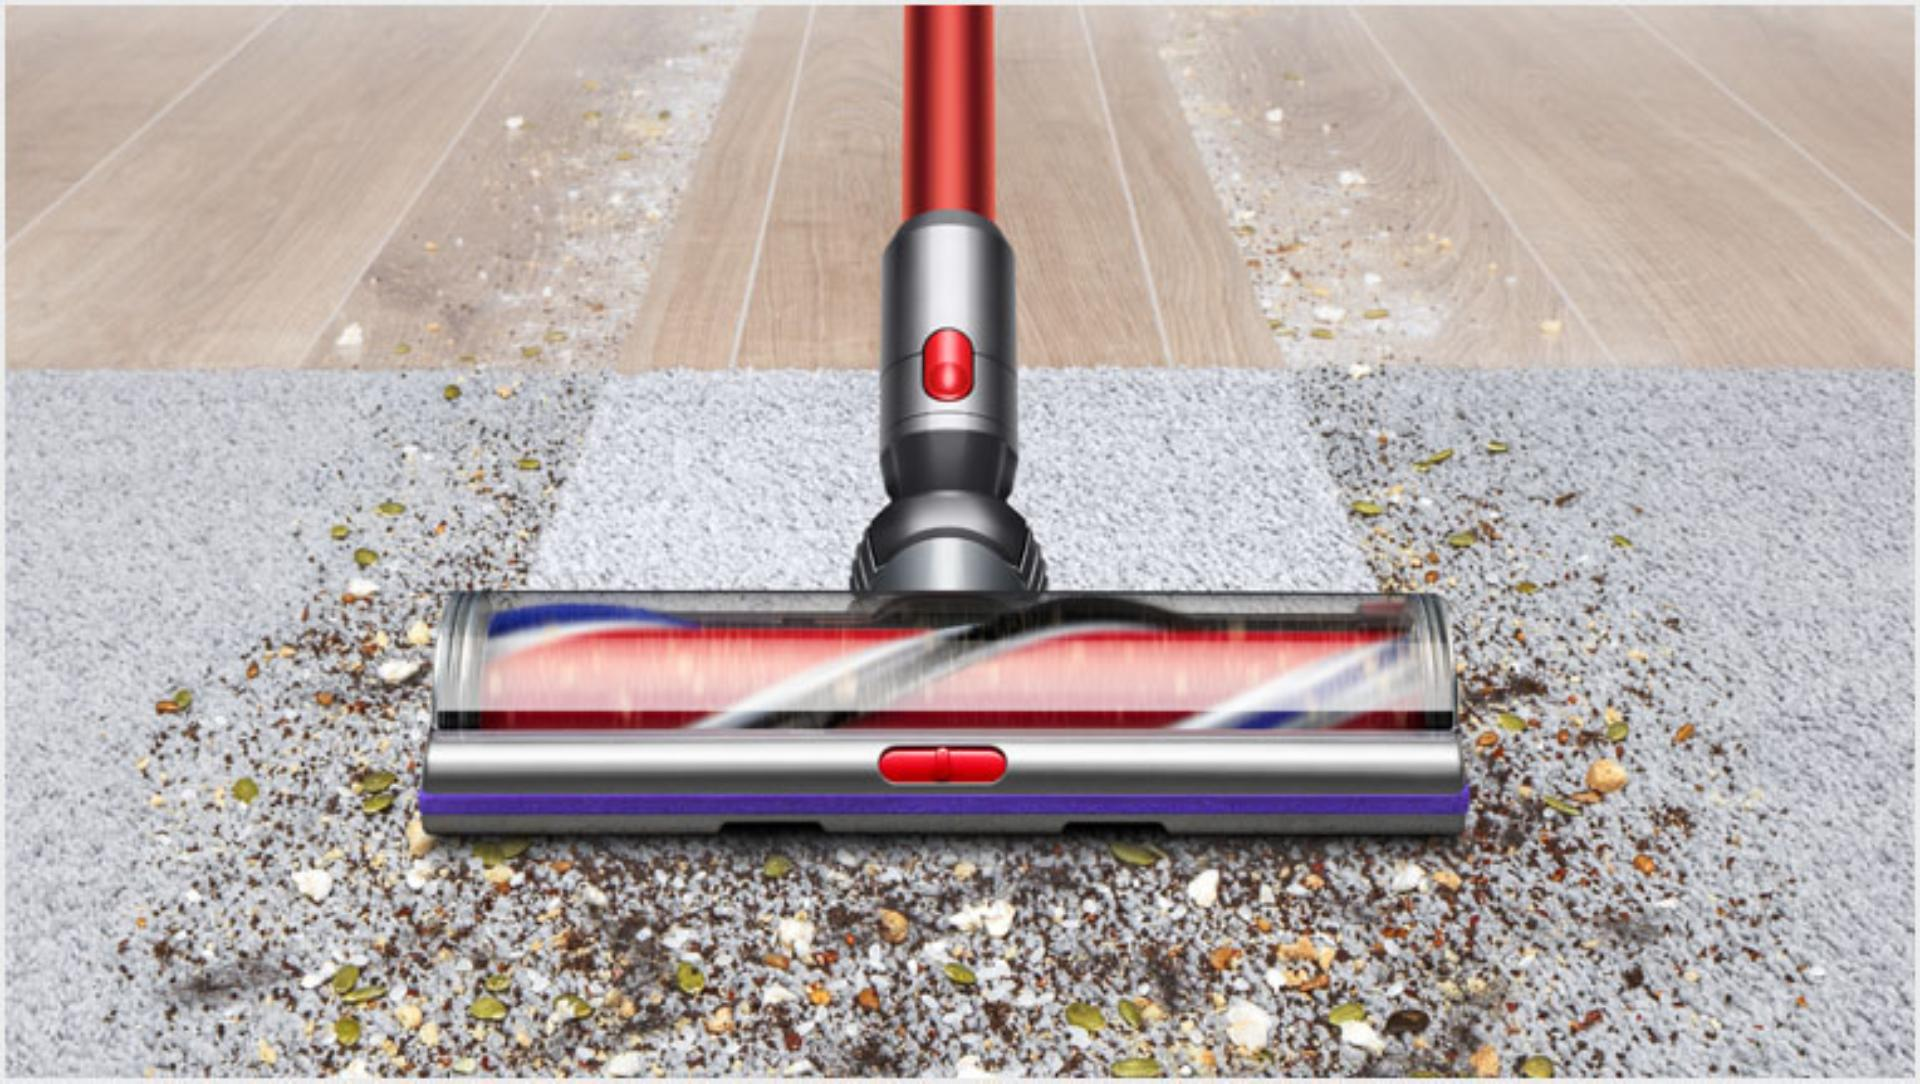 The High Torque XL cleaner head cleaning hard floor and carpet